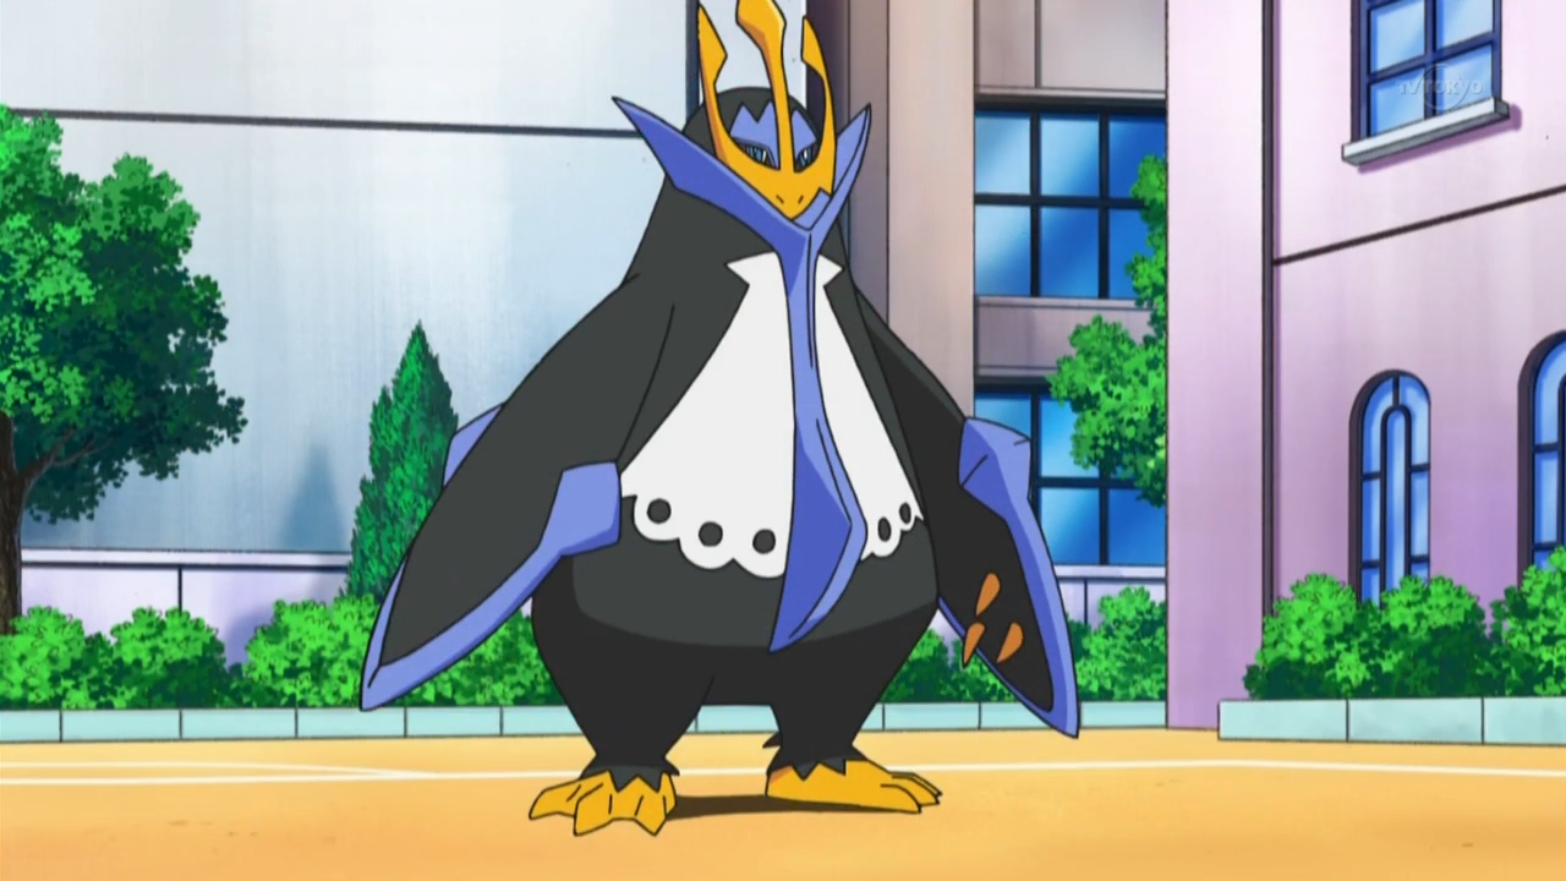 Having evolved from his Prinplup in the run up to the Grand Festival, Empoleon was used during the appeal round. Like before, it is Kenny's powerhouse and has many powerful attacks including Metal Claw, Bubble Beam, Mist and Flash Cannon allowing it to be an incredibly strong Pokémon within Kenny's team.